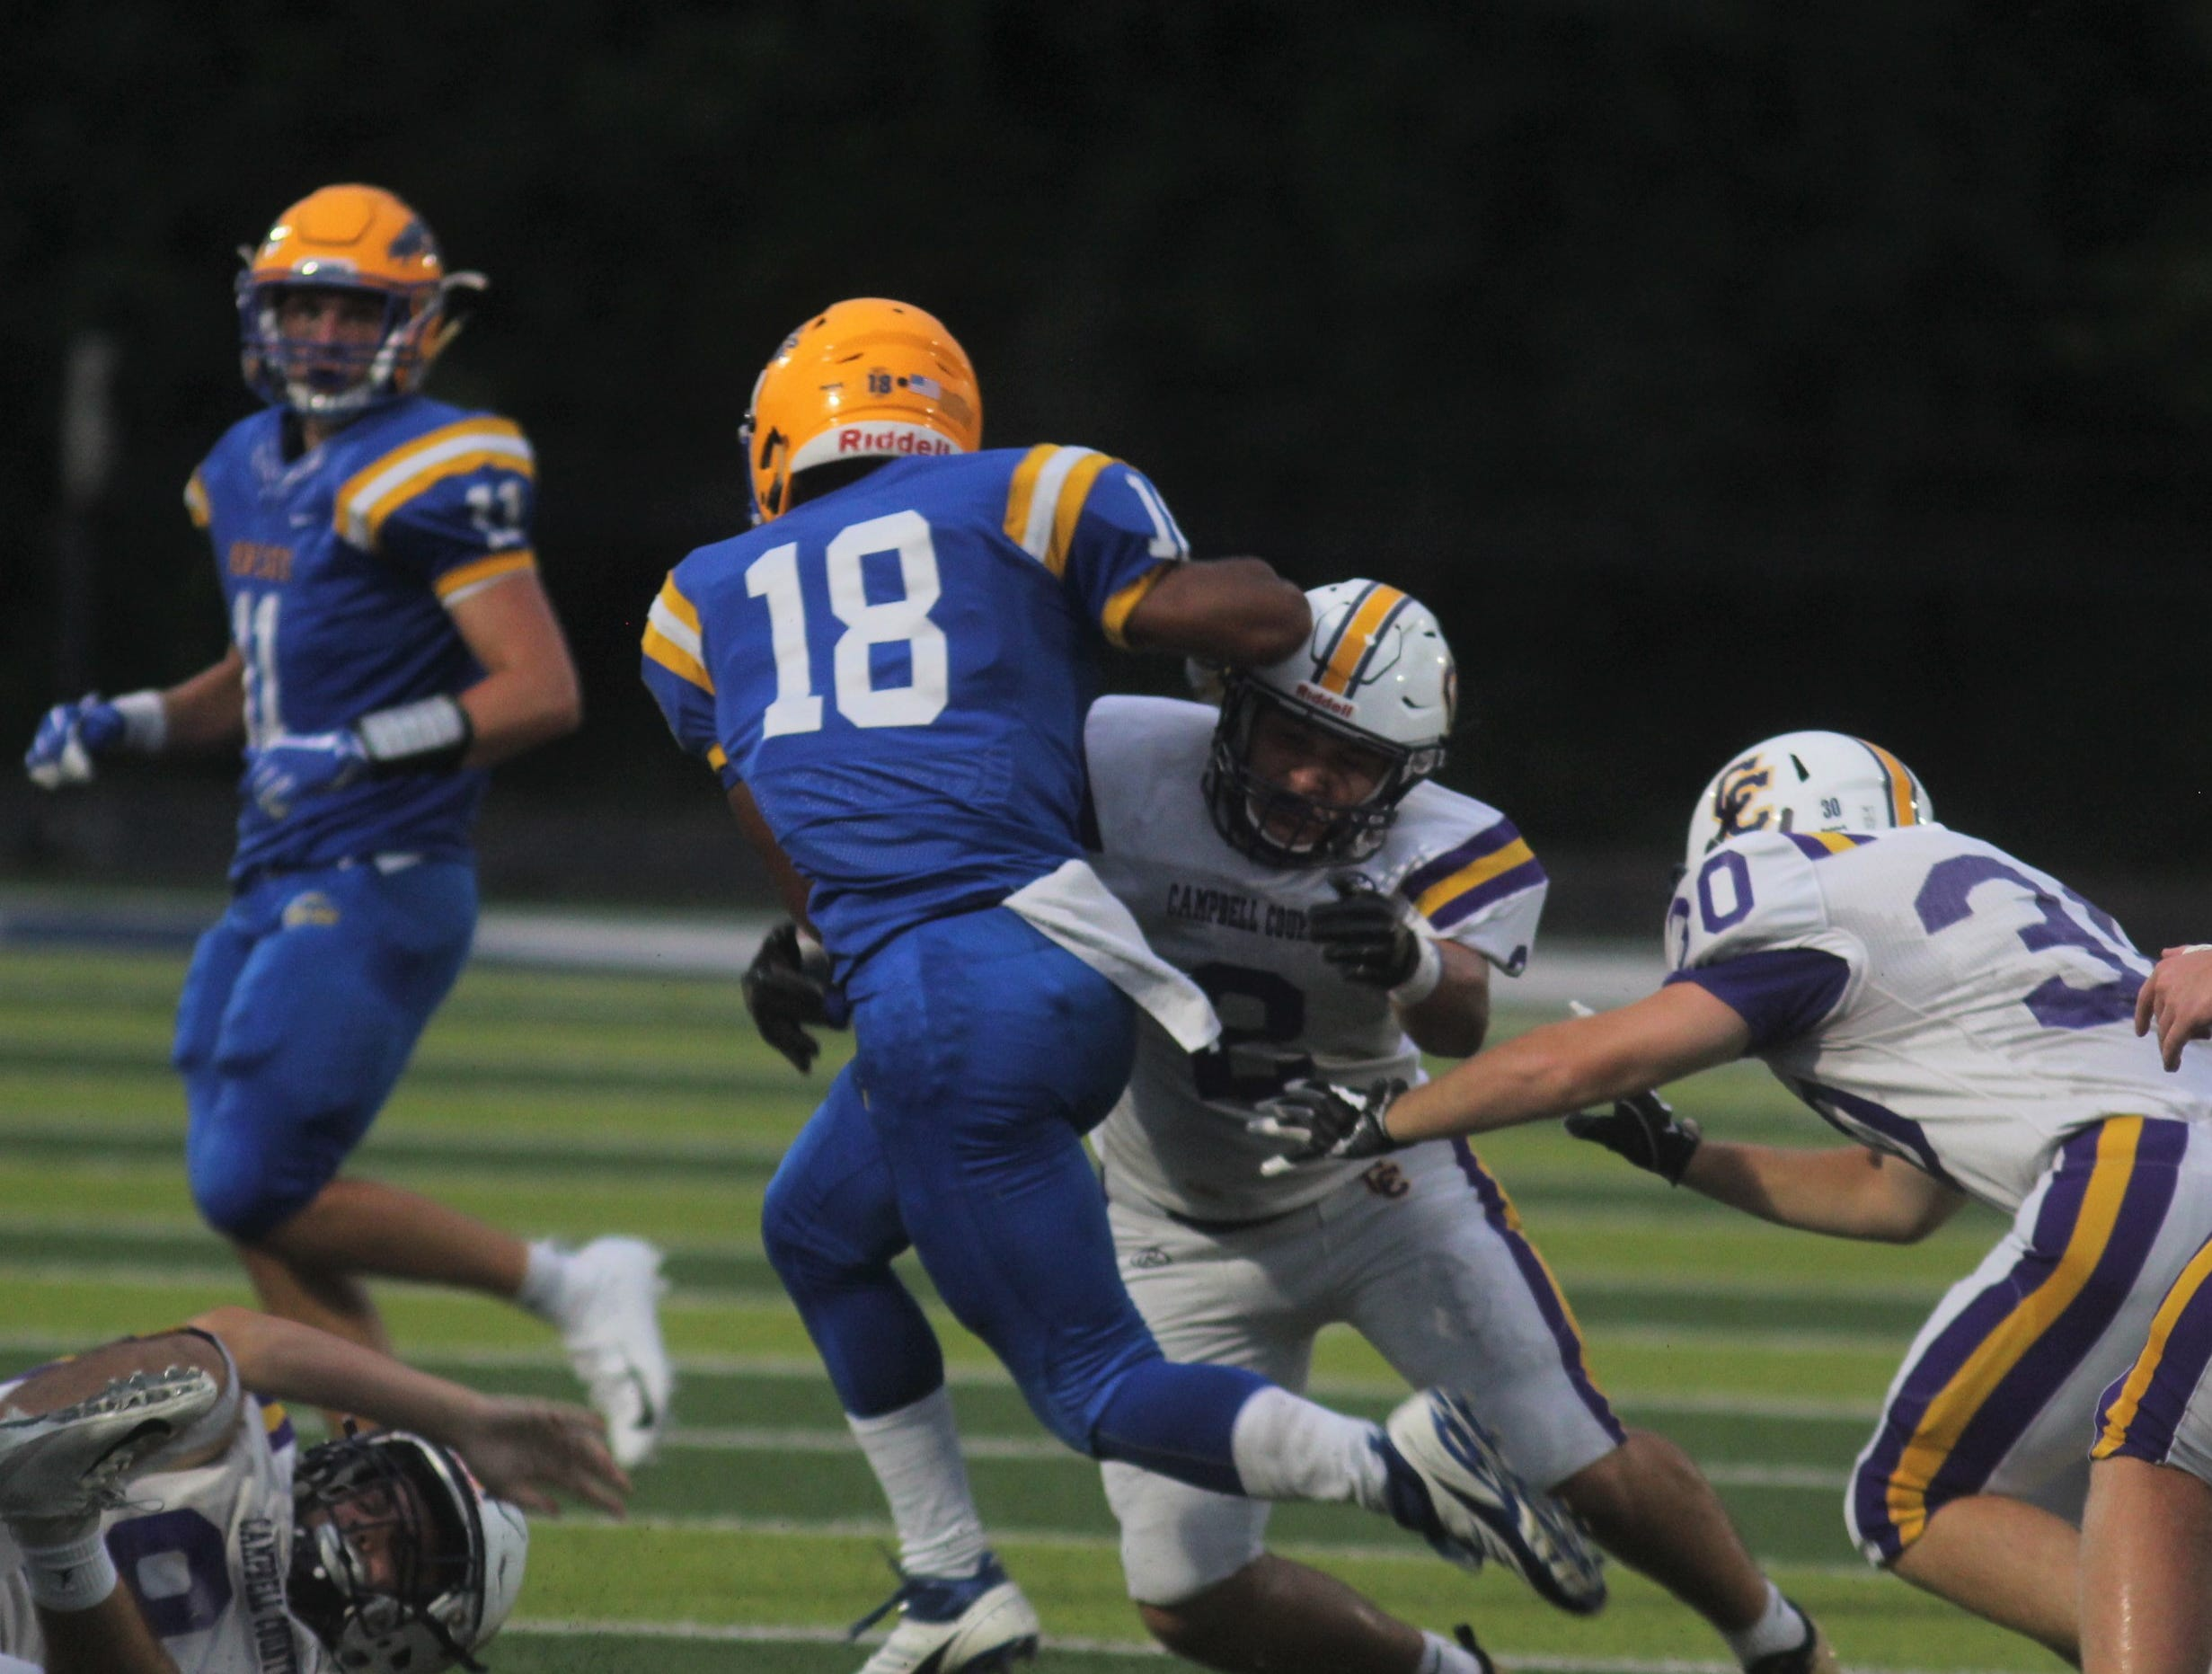 Campbell County senior Logan Harrod tackles NCC's Hezekiah Miller as Campbell County and Newport Central Catholic played a football game August 31, 2018 at Covington Catholic High School. Campbell County led 24-0 at halftime when the game was suspended due to lightning.